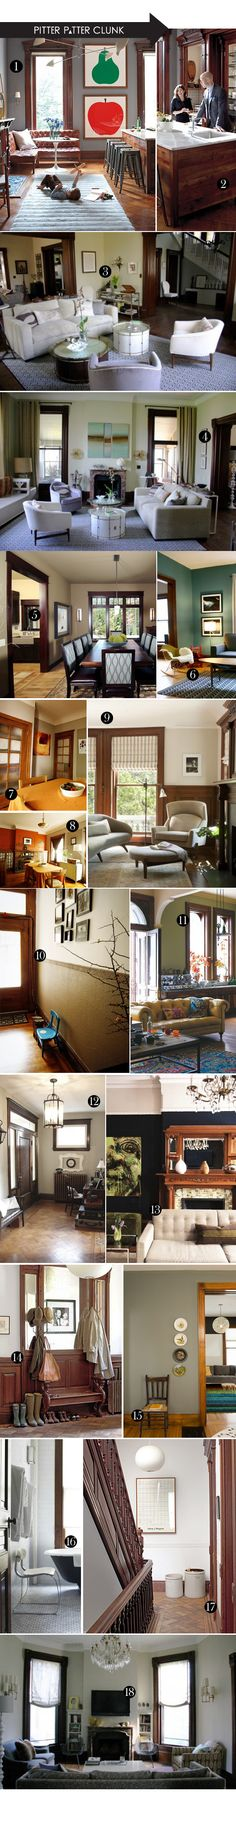 Trendy Home Renovation Living Room Wood Trim Ideas Natural Wood Trim, Dark Wood Trim, Painting Wood Trim, House Painting, Stained Wood Trim, Room Colors, Paint Colors, Wall Colors, Up House